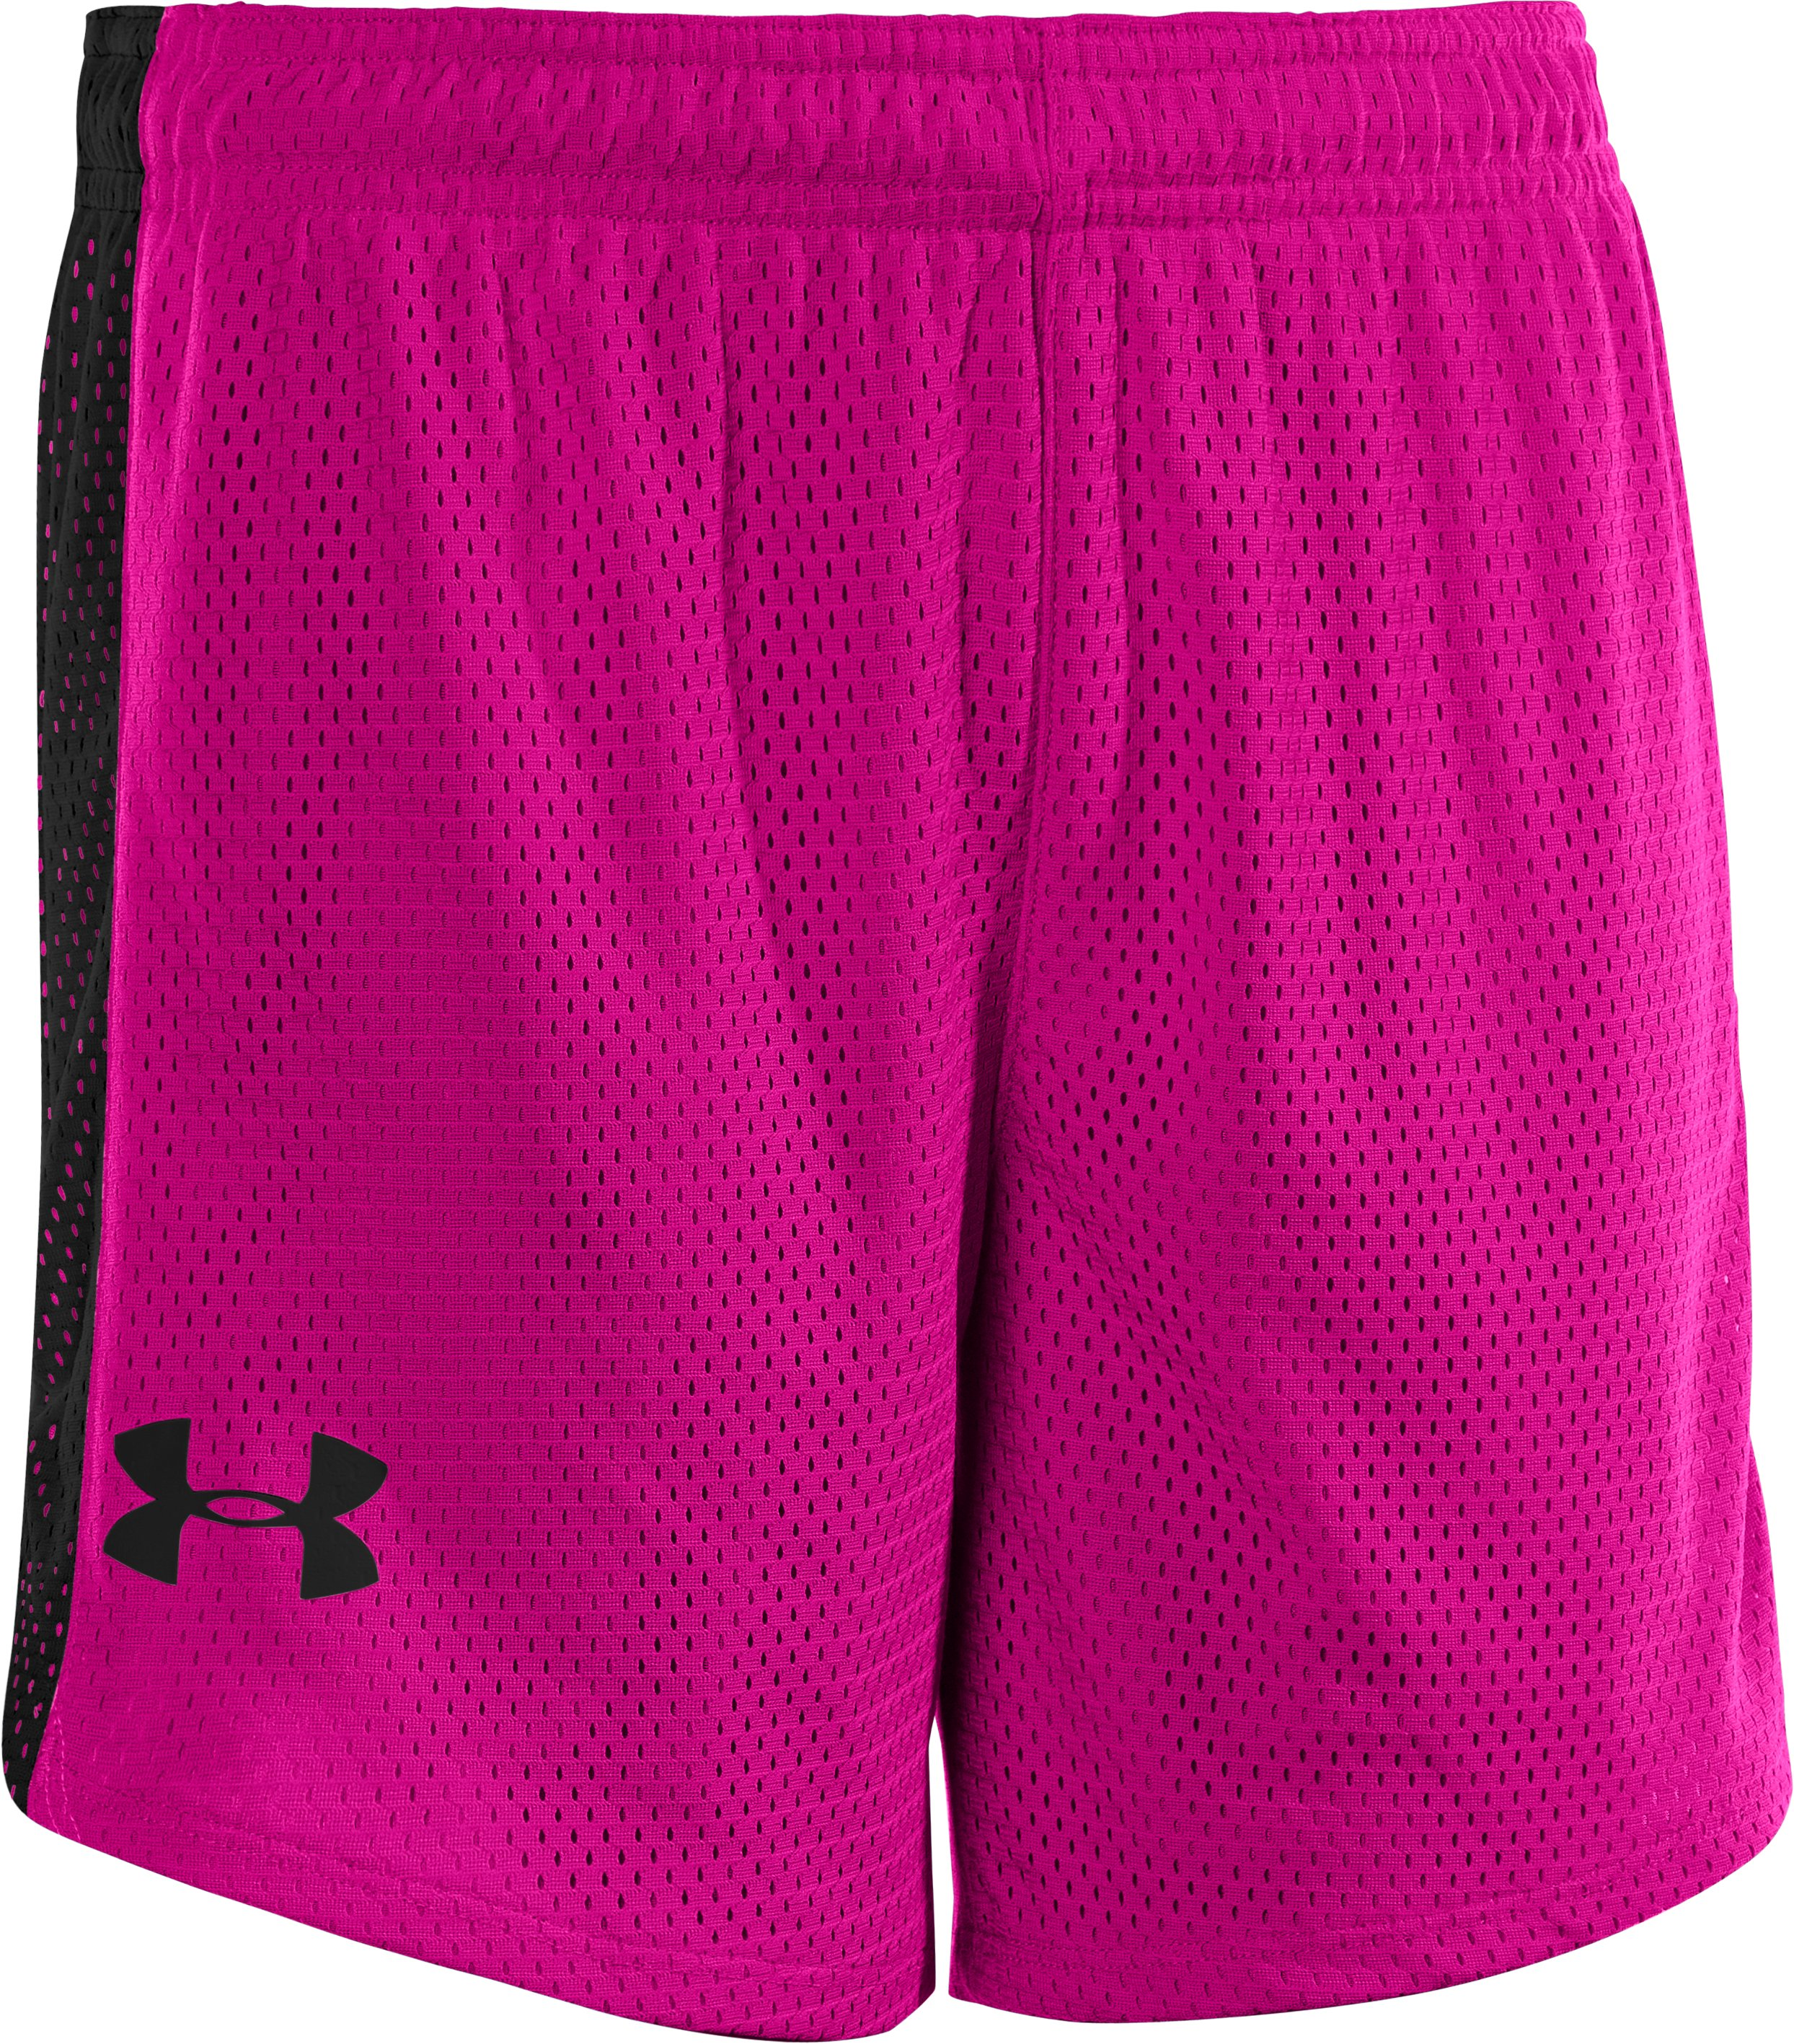 "Girls' UA Trophy 5"" Mesh Shorts, Tropic Pink, zoomed image"